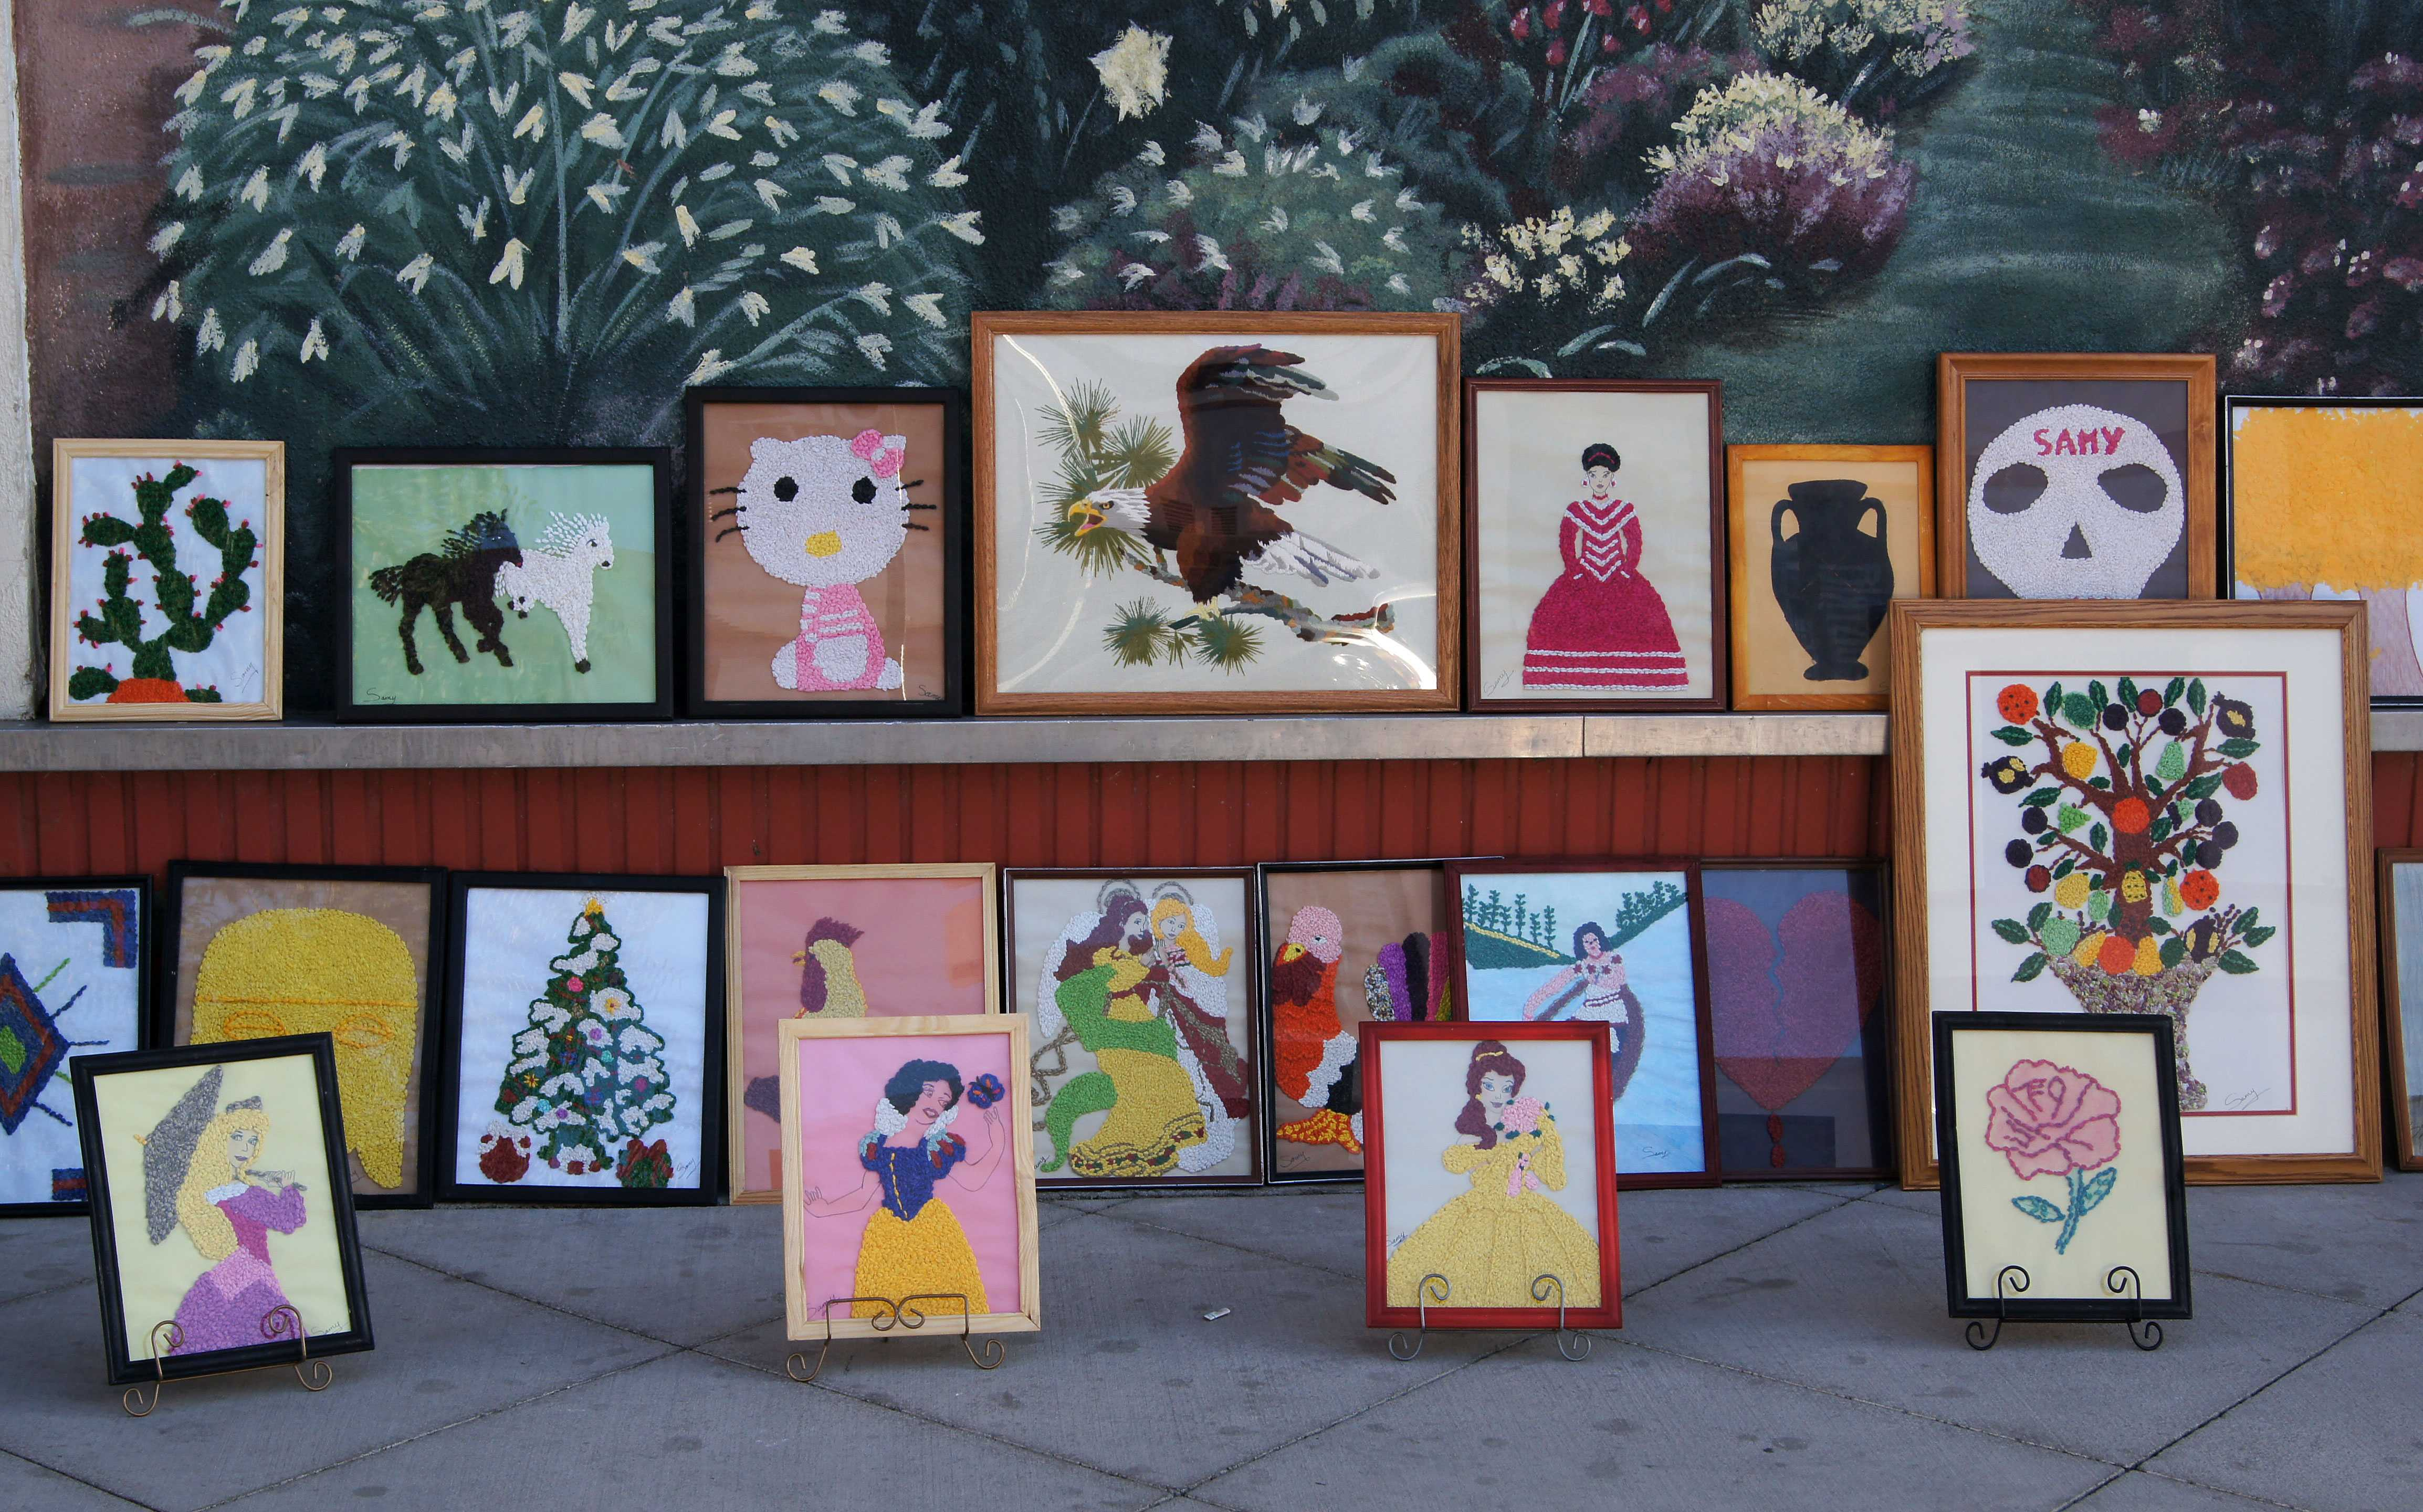 Art for sale on sidewalk during First Friday on September 2 in downtown Bakersfield.